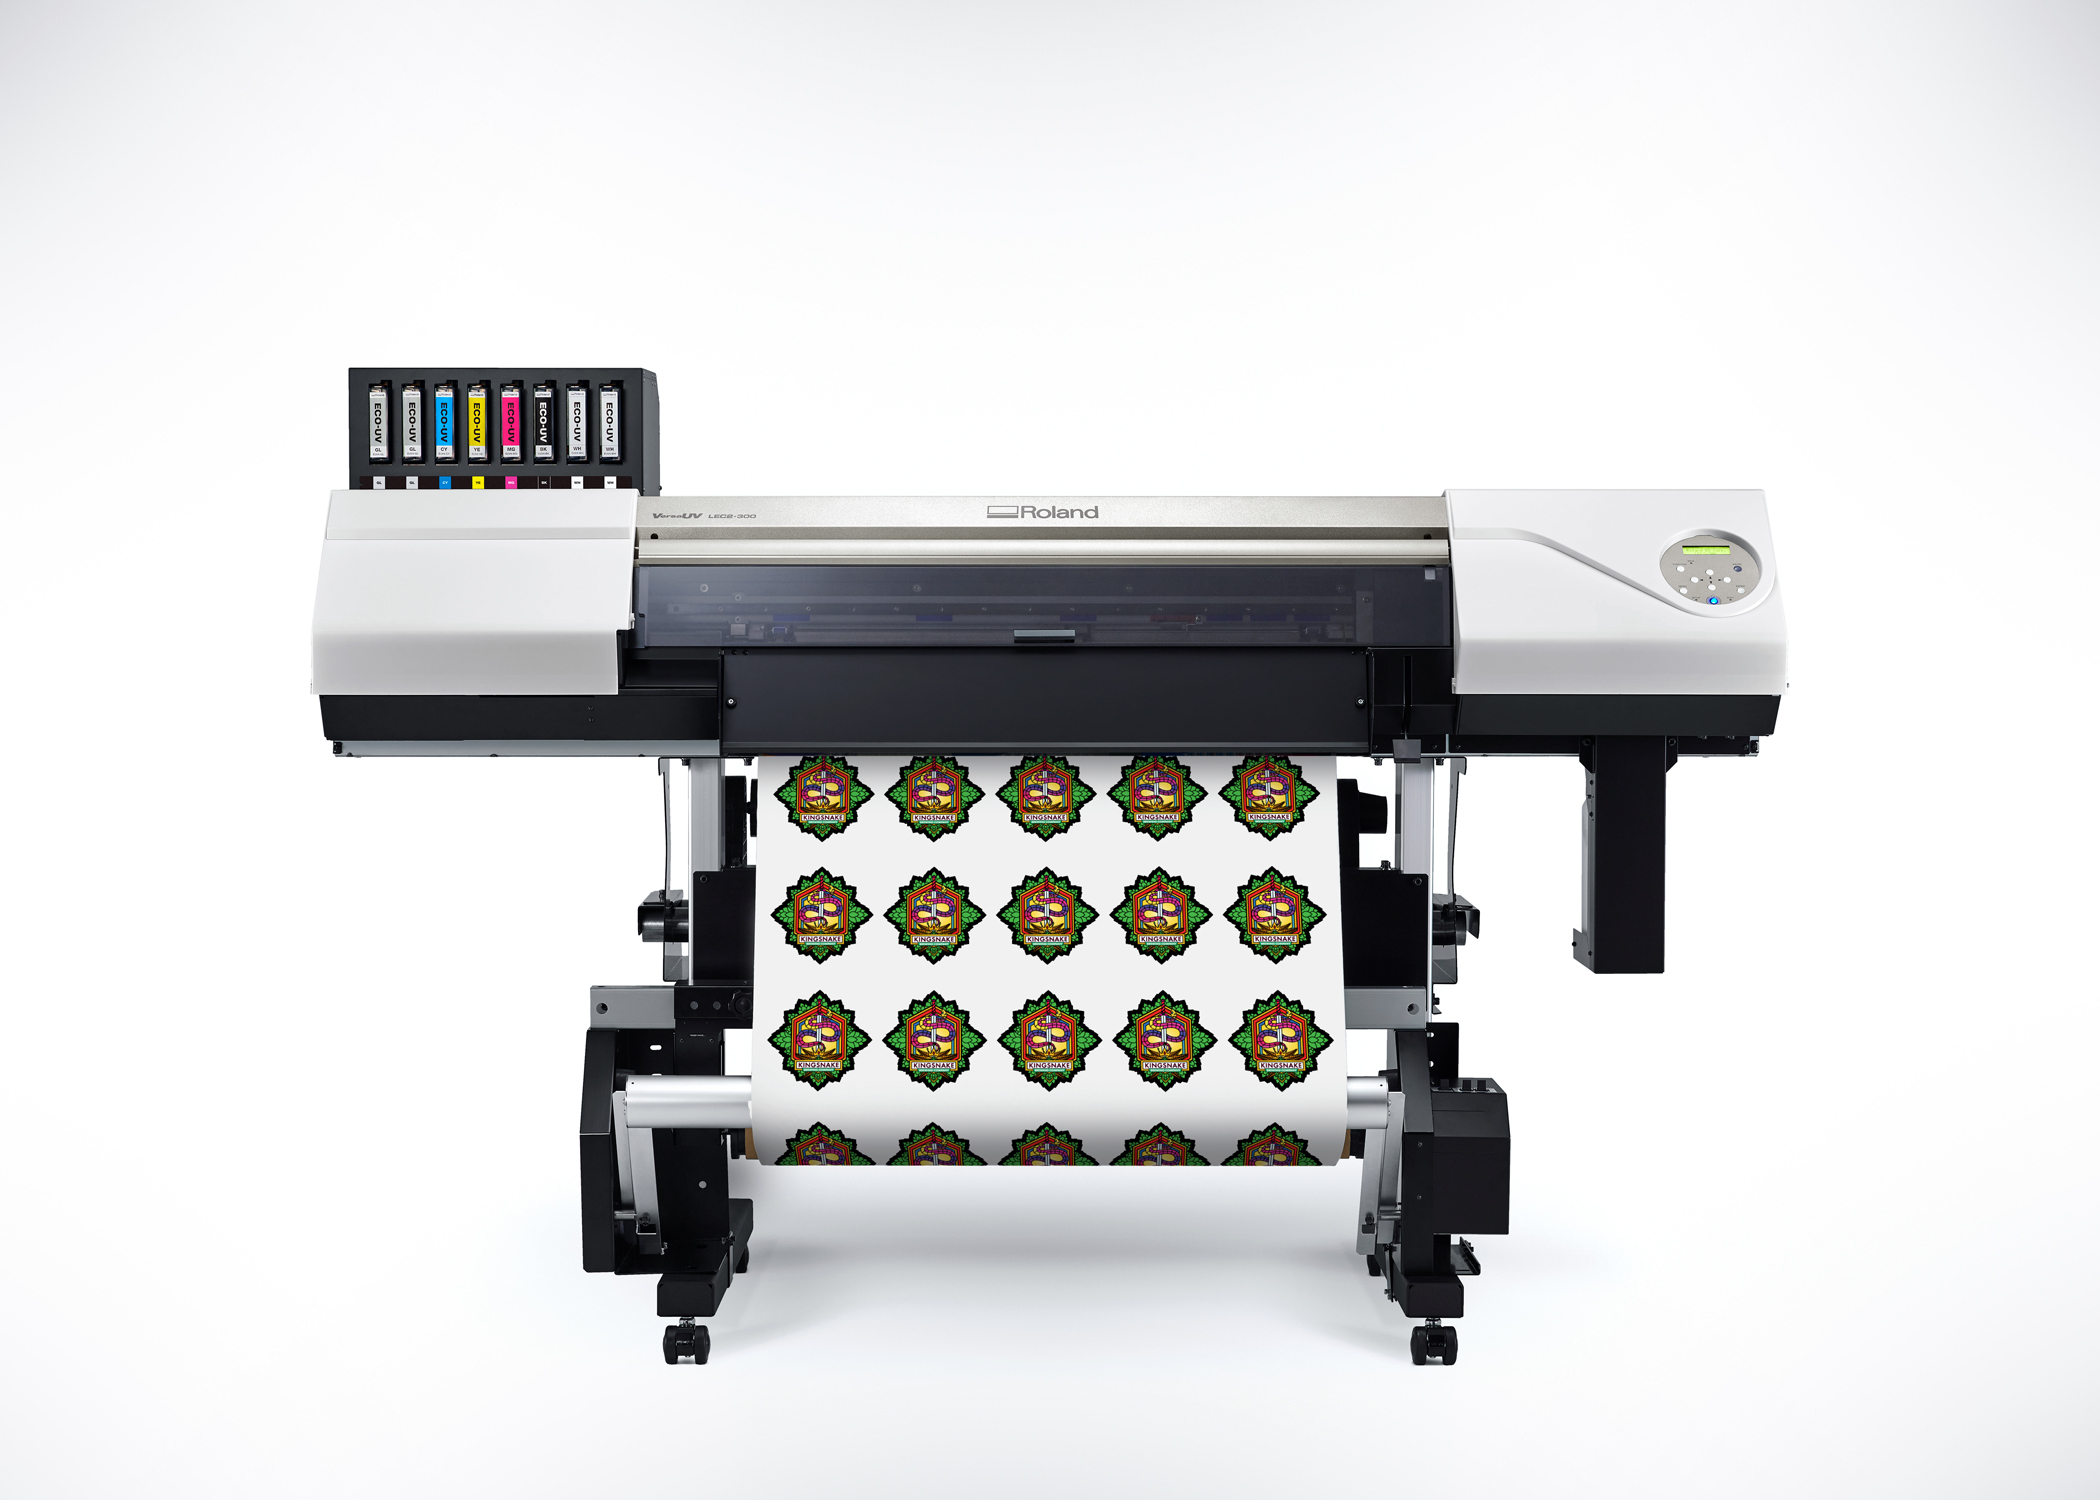 The new Roland VersaUV LEC2-300 UV printer/cutter